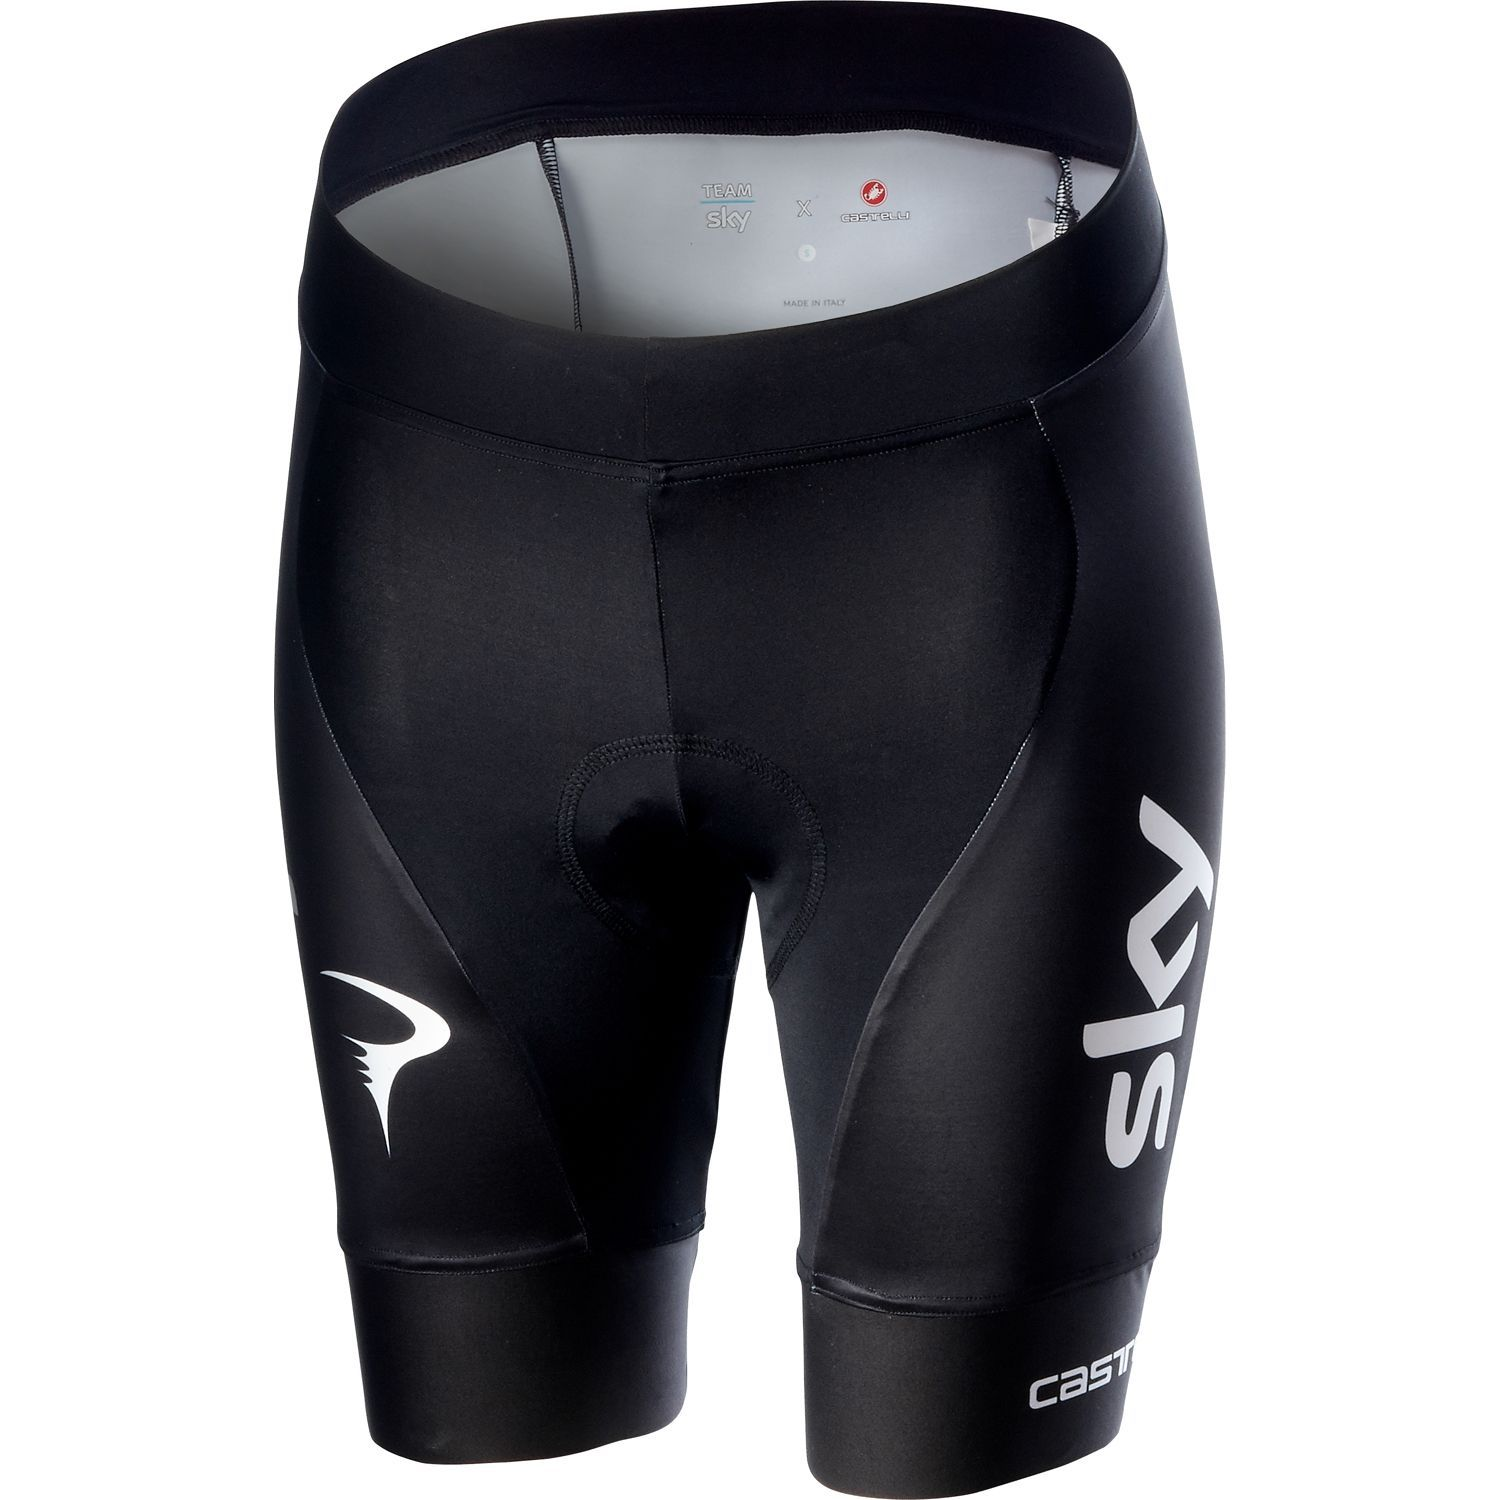 ... shorts - Castelli professional cycling team. Previous 6c286aa82